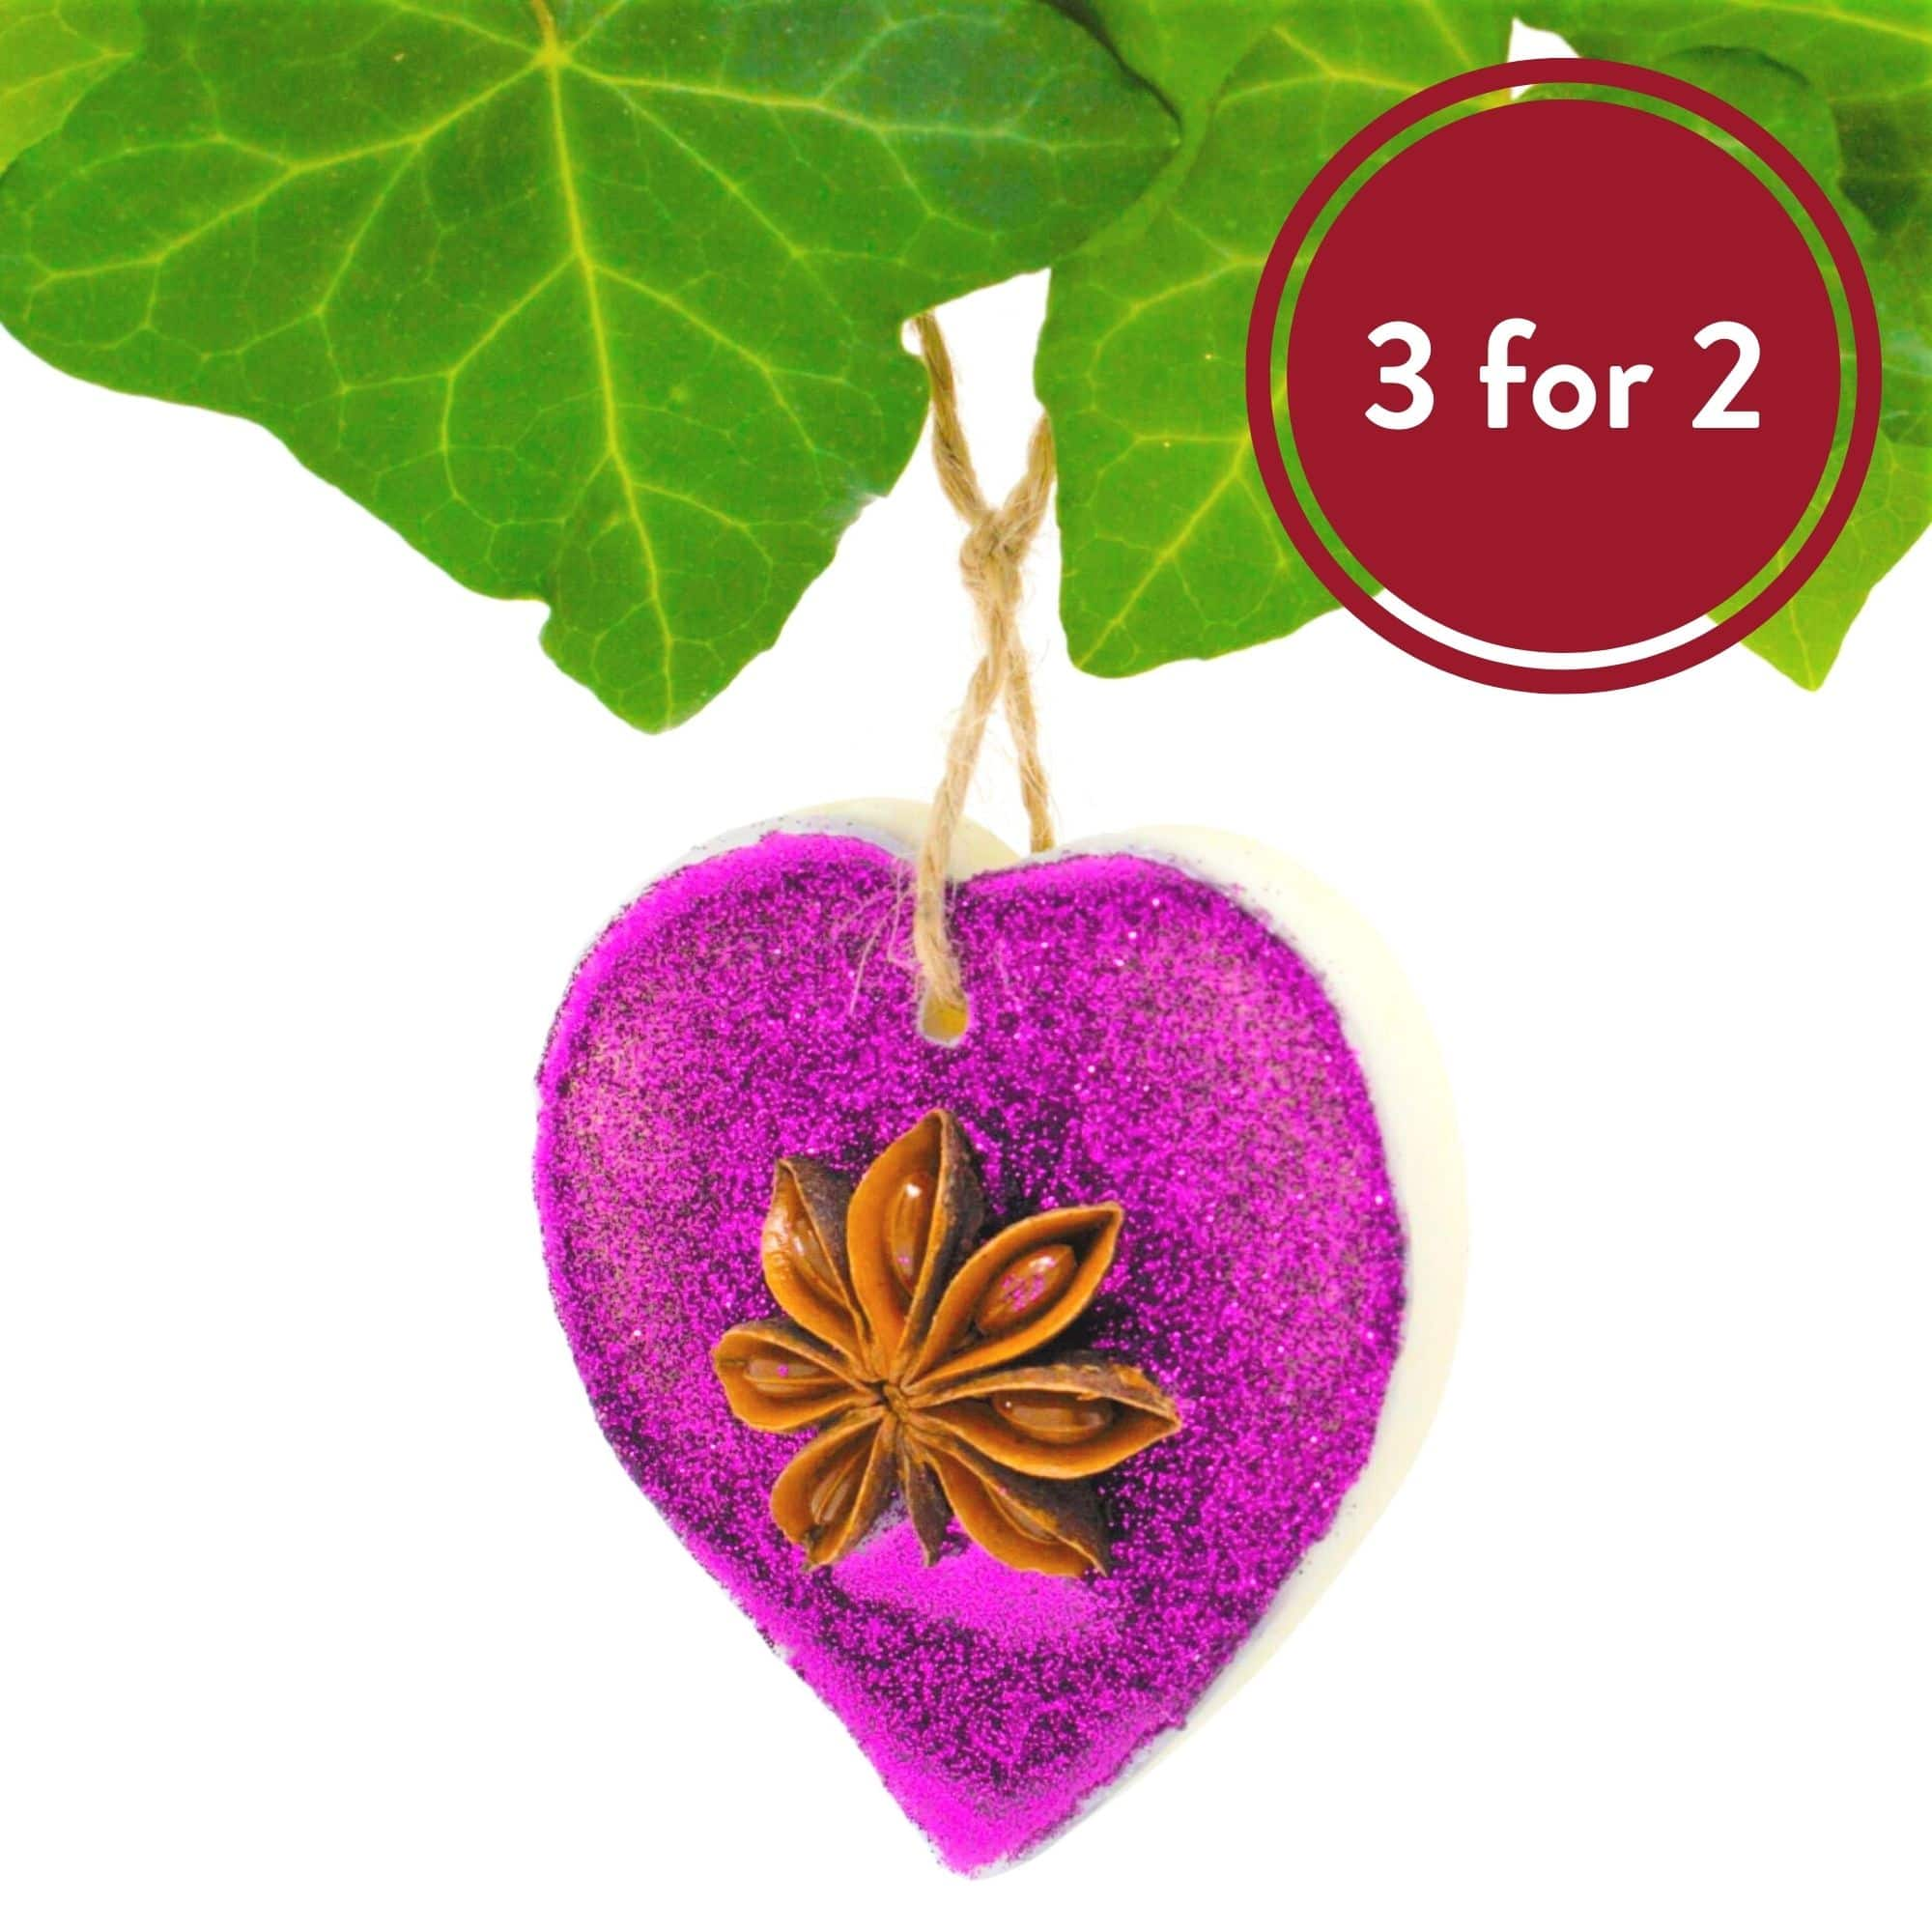 night divine scented ornament 3 for 2 by Twoodle Co Natural Home Scents